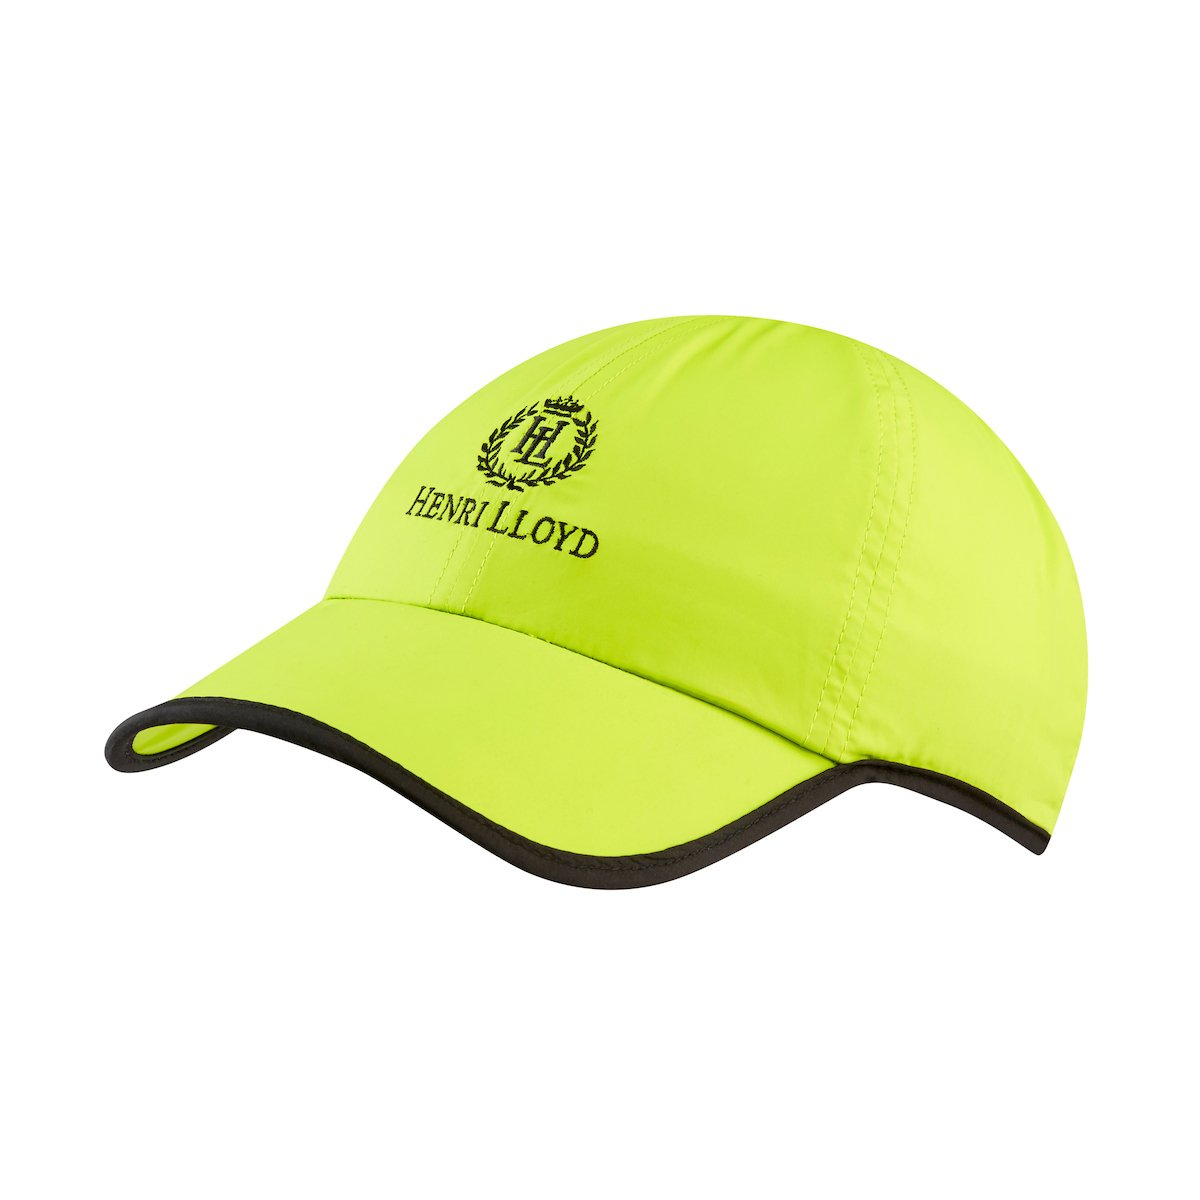 2017 Henri Lloyd Breeze Cap Lime Y60094